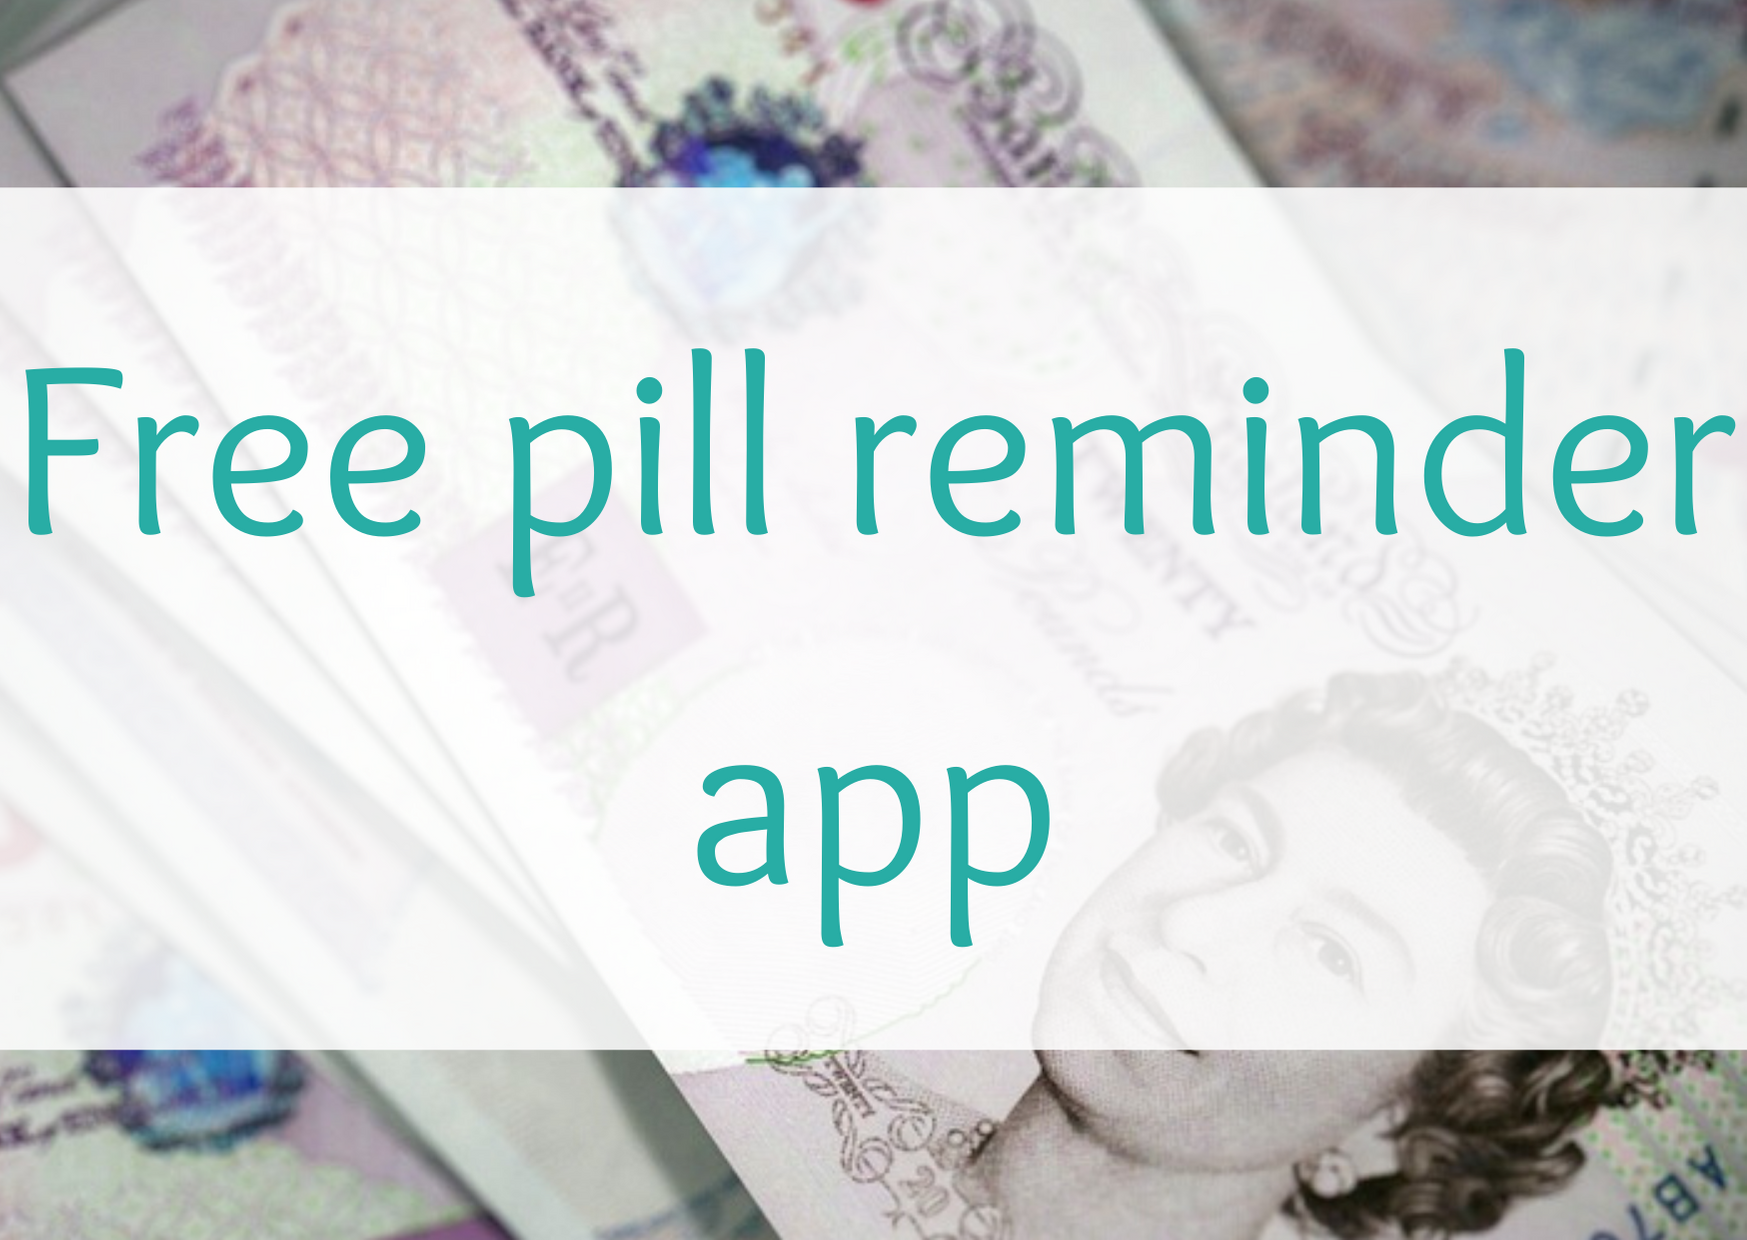 Safe and sound free pill reminder app